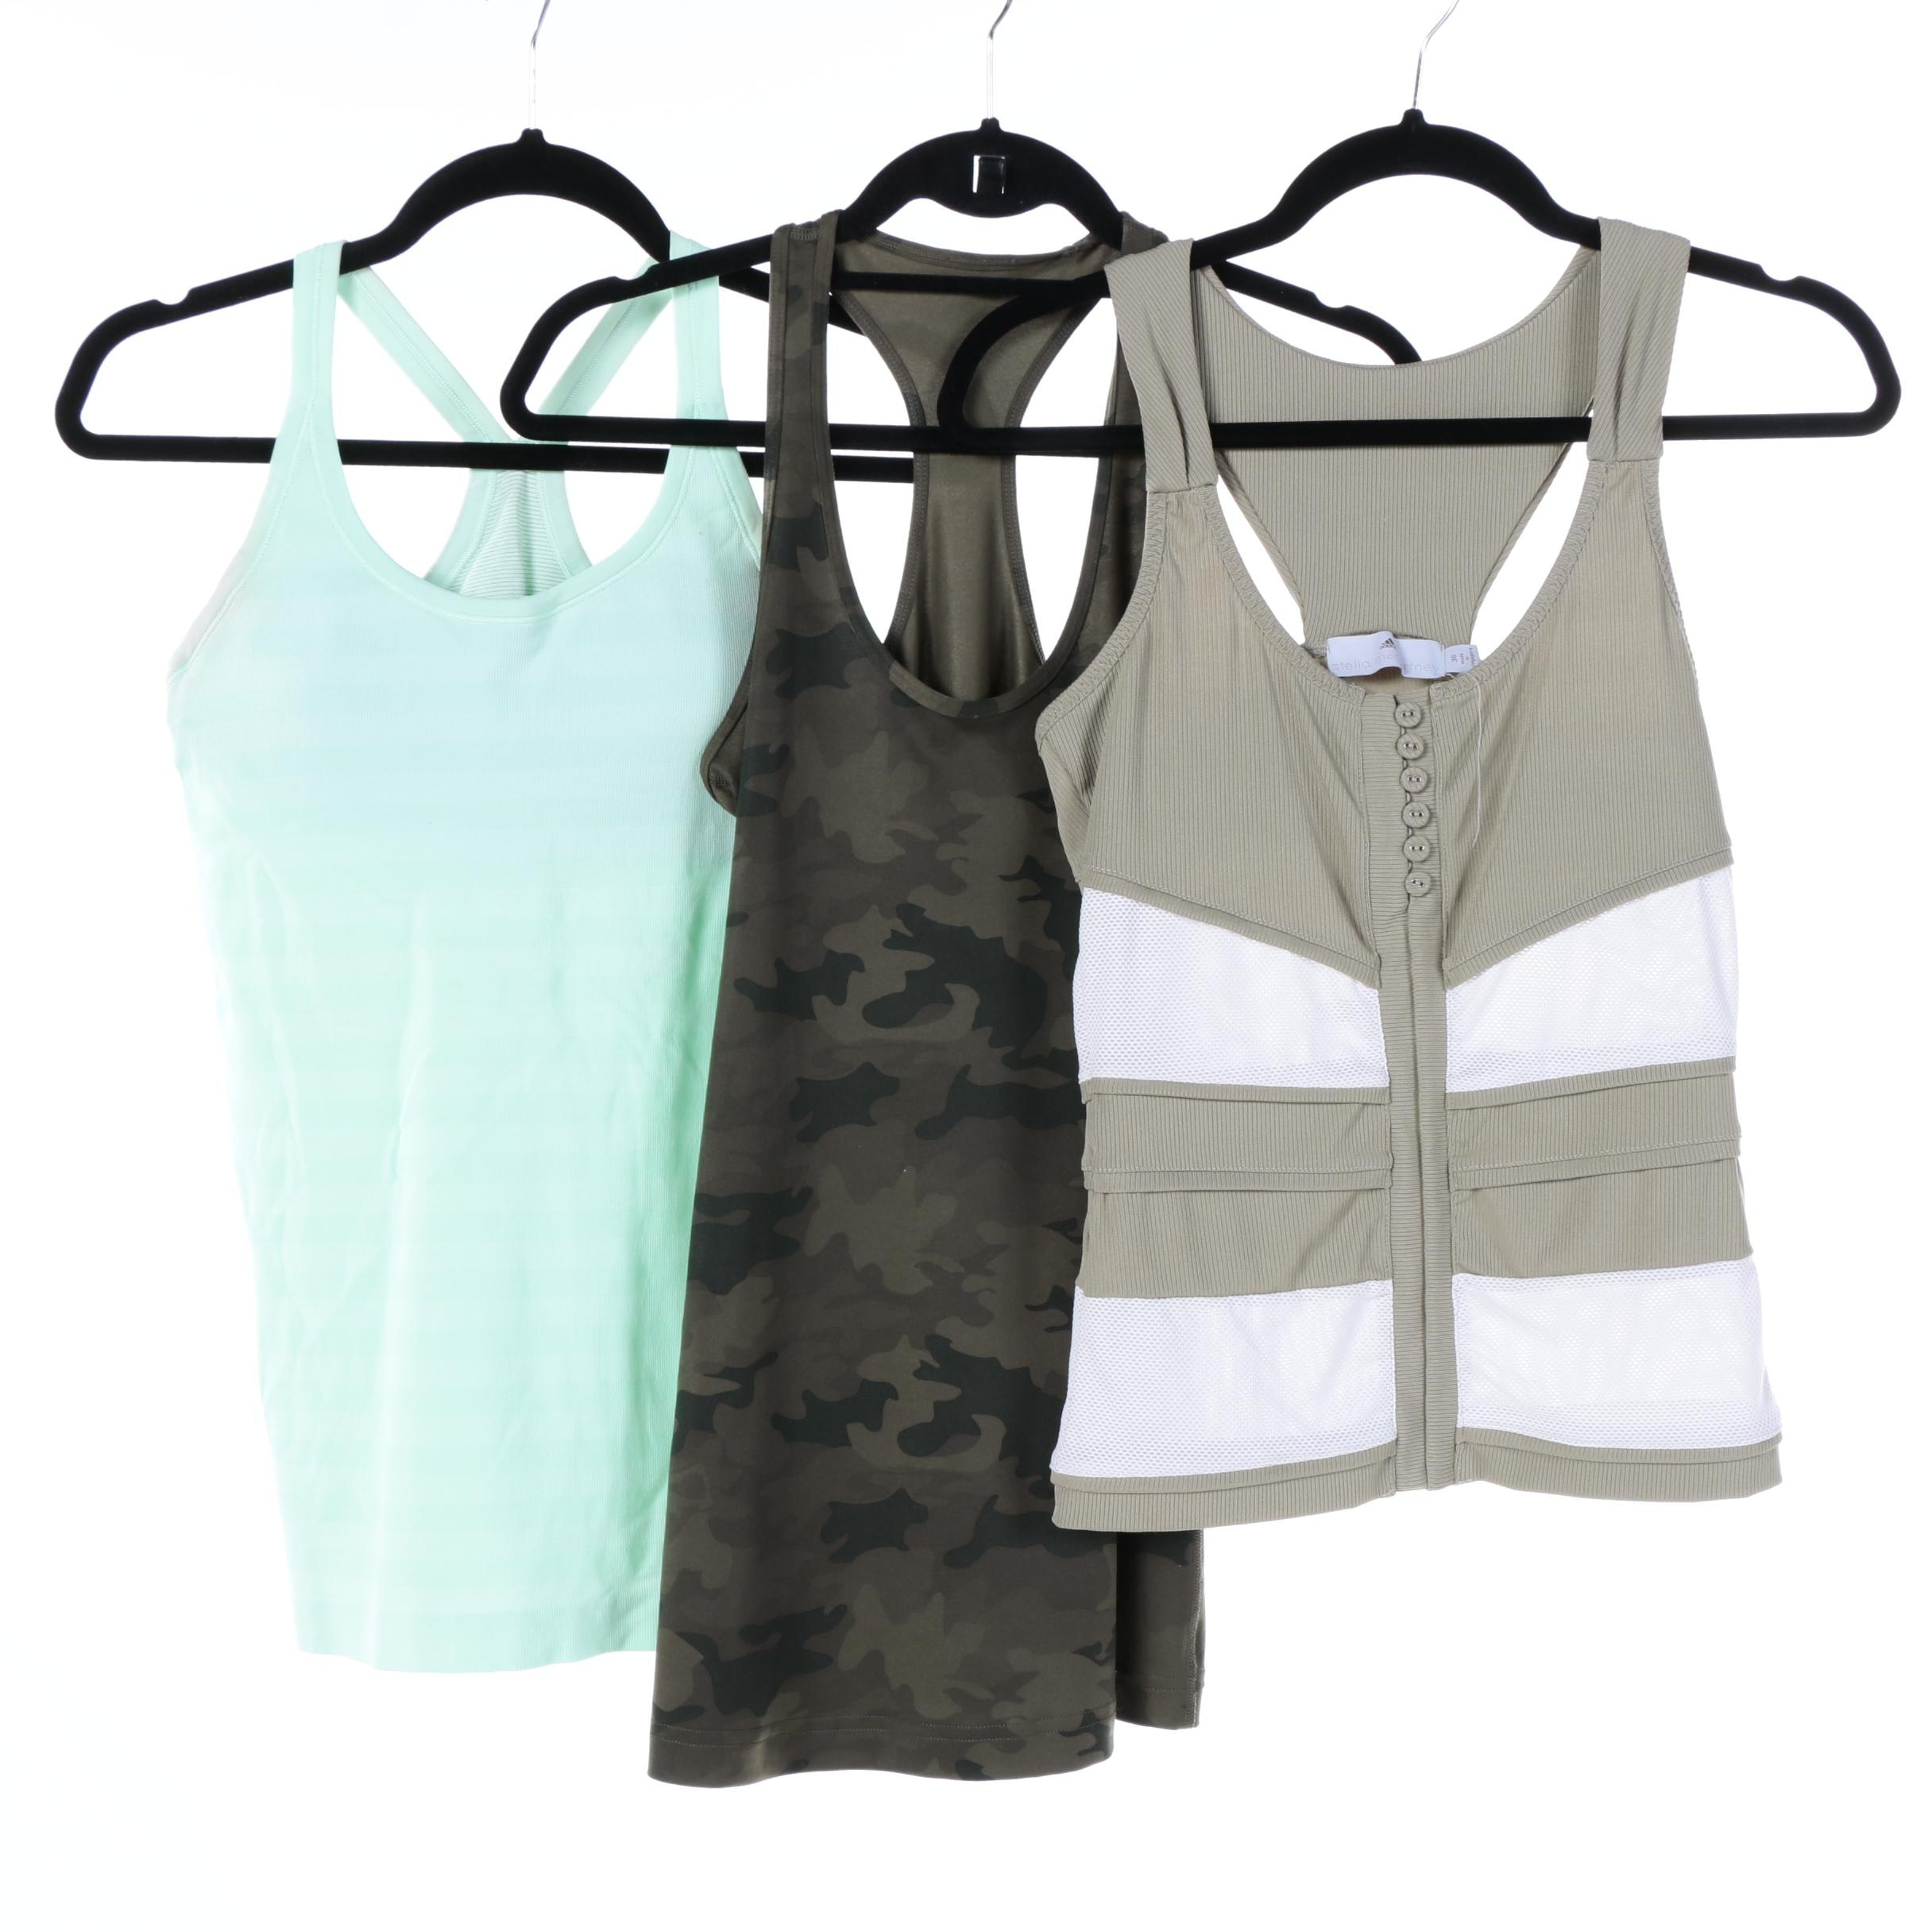 Women's Stella McCartney for Adidas and Lululemon Athletic Tank Tops